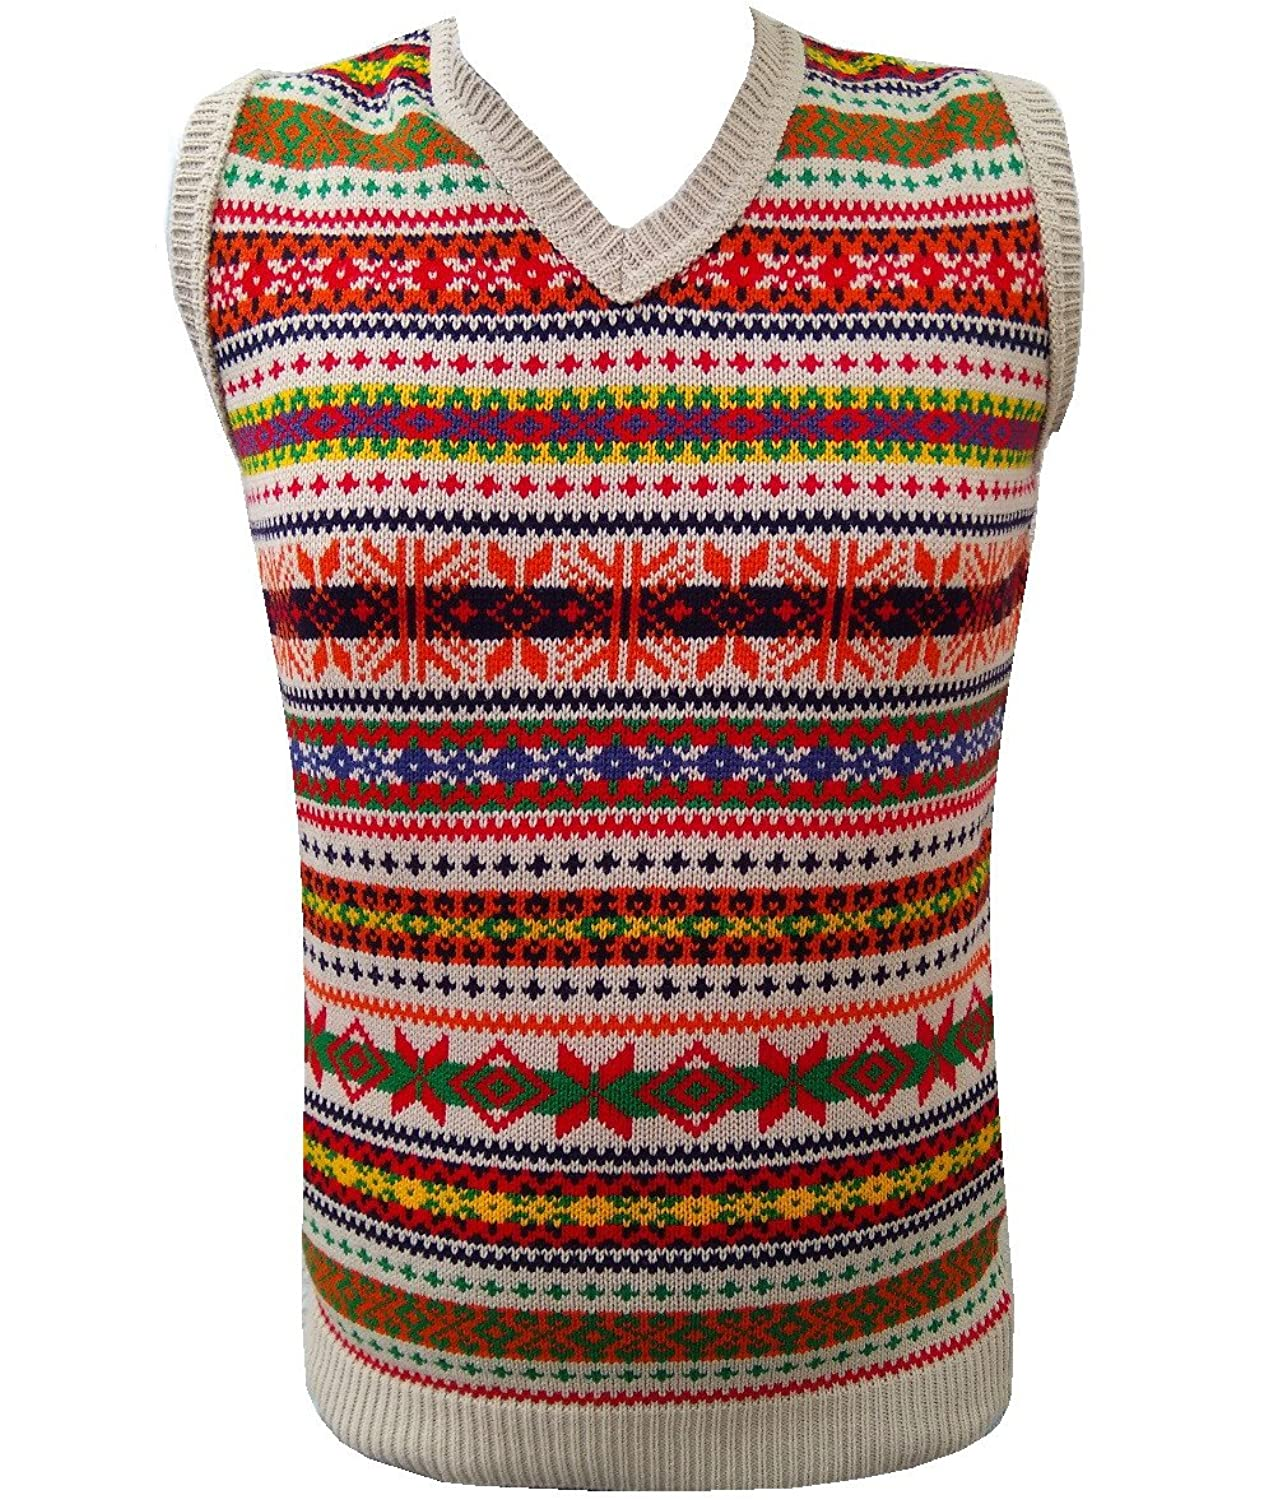 1940s Mens Clothing London Knitwear Gallery Retro Vintage Knitwear Tanktop Sleeveless Golf Sweater £19.99 AT vintagedancer.com